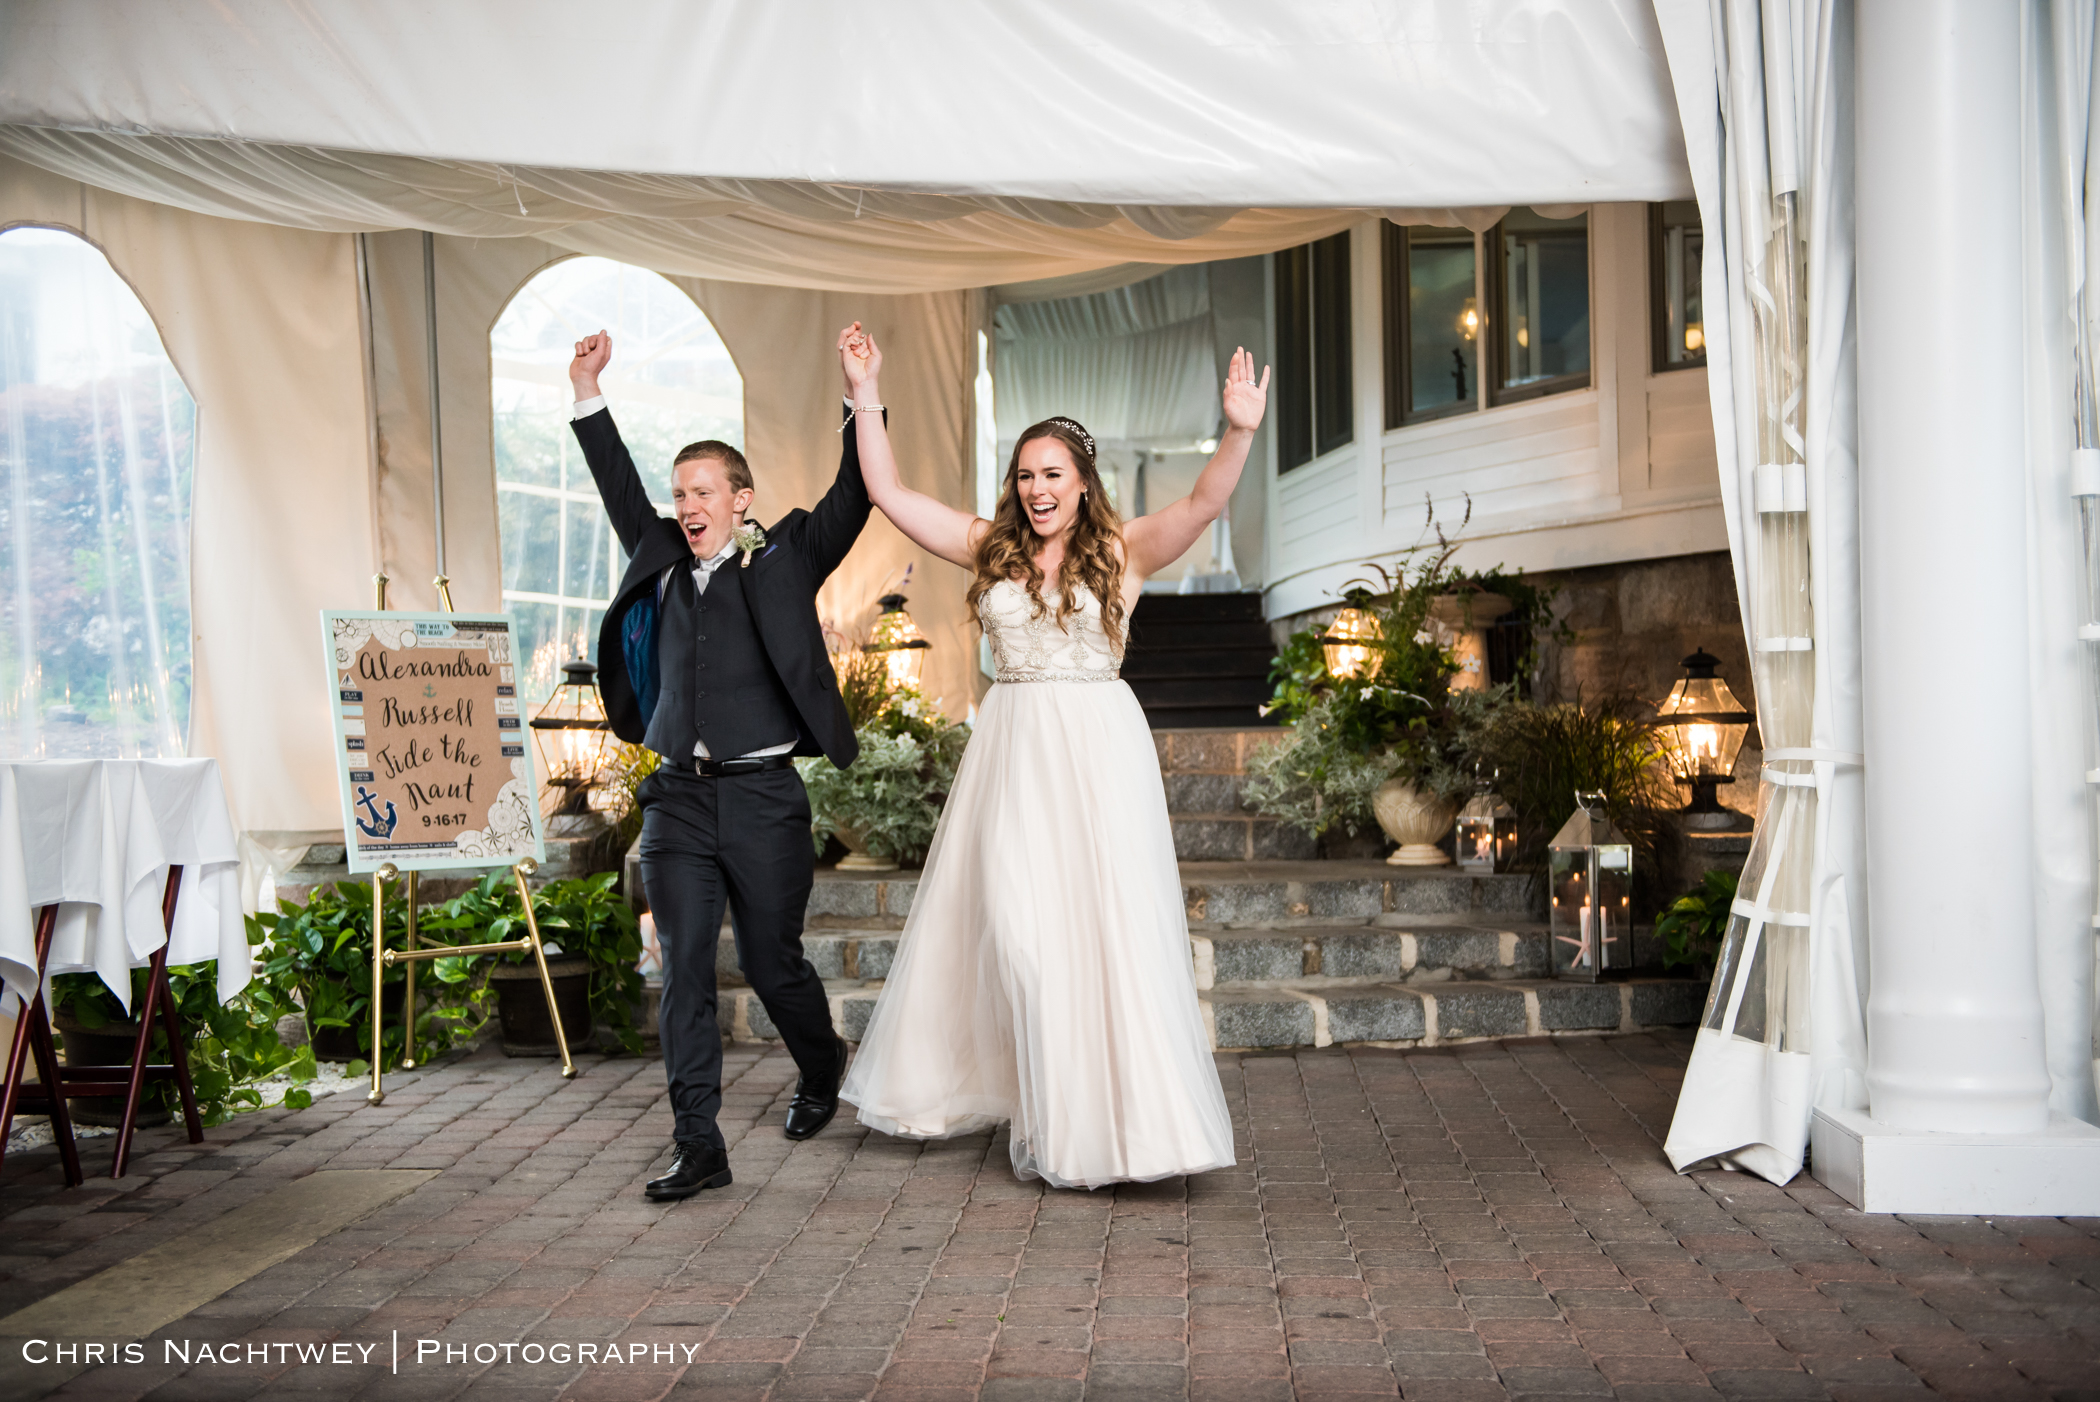 inn-at-mystic-wedding-photos-chris-nachtwey-photography-2018-23.jpg